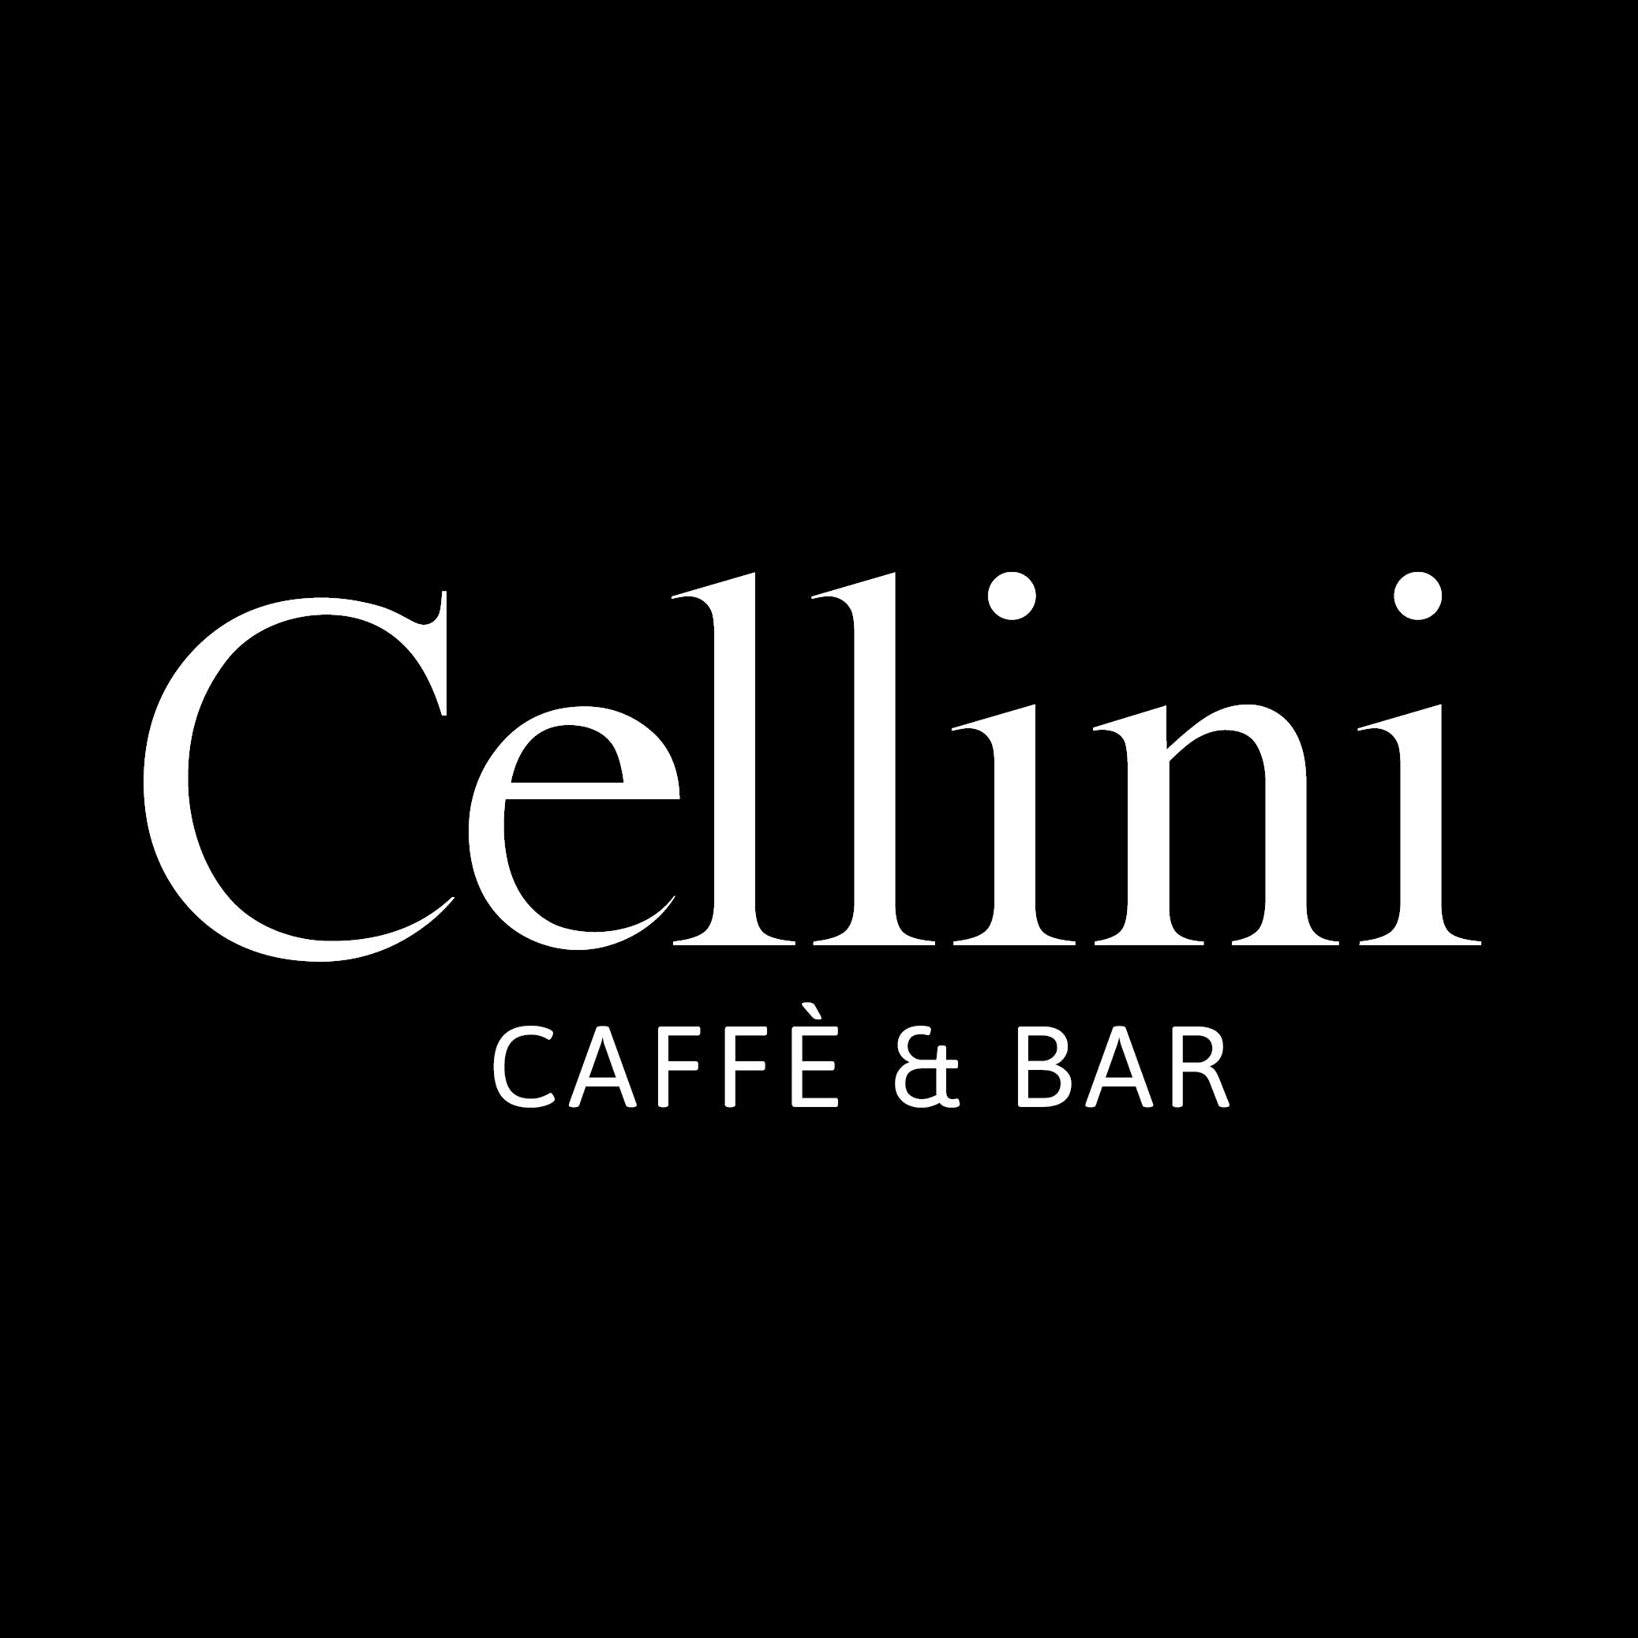 Cellini Caffé & Bar